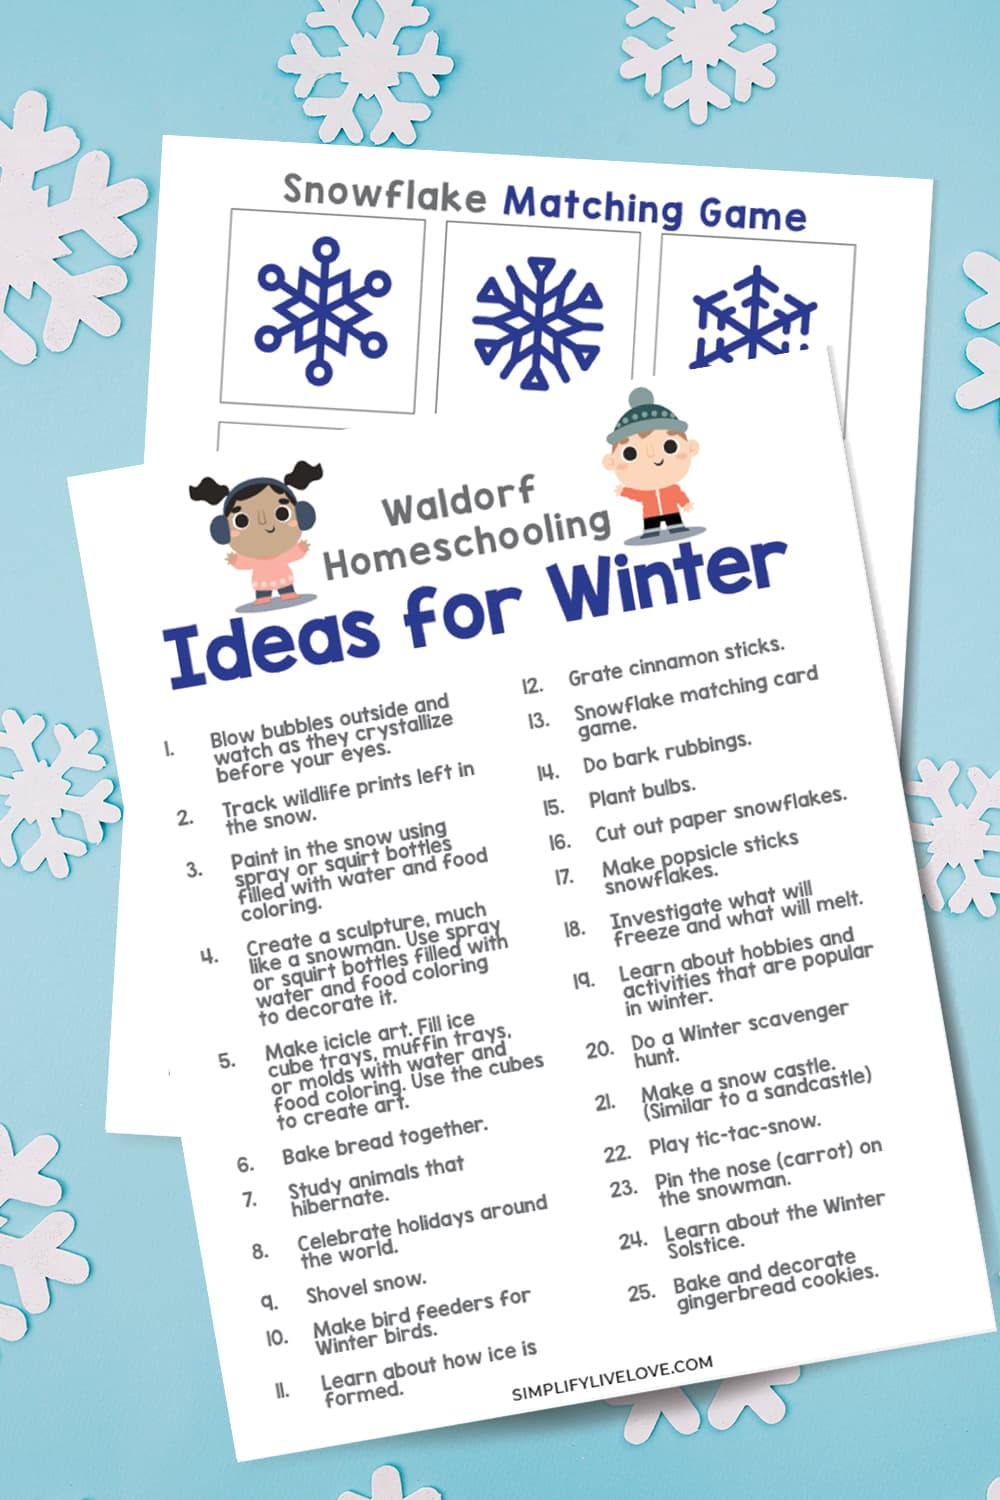 Homeschool Ideas for Winter